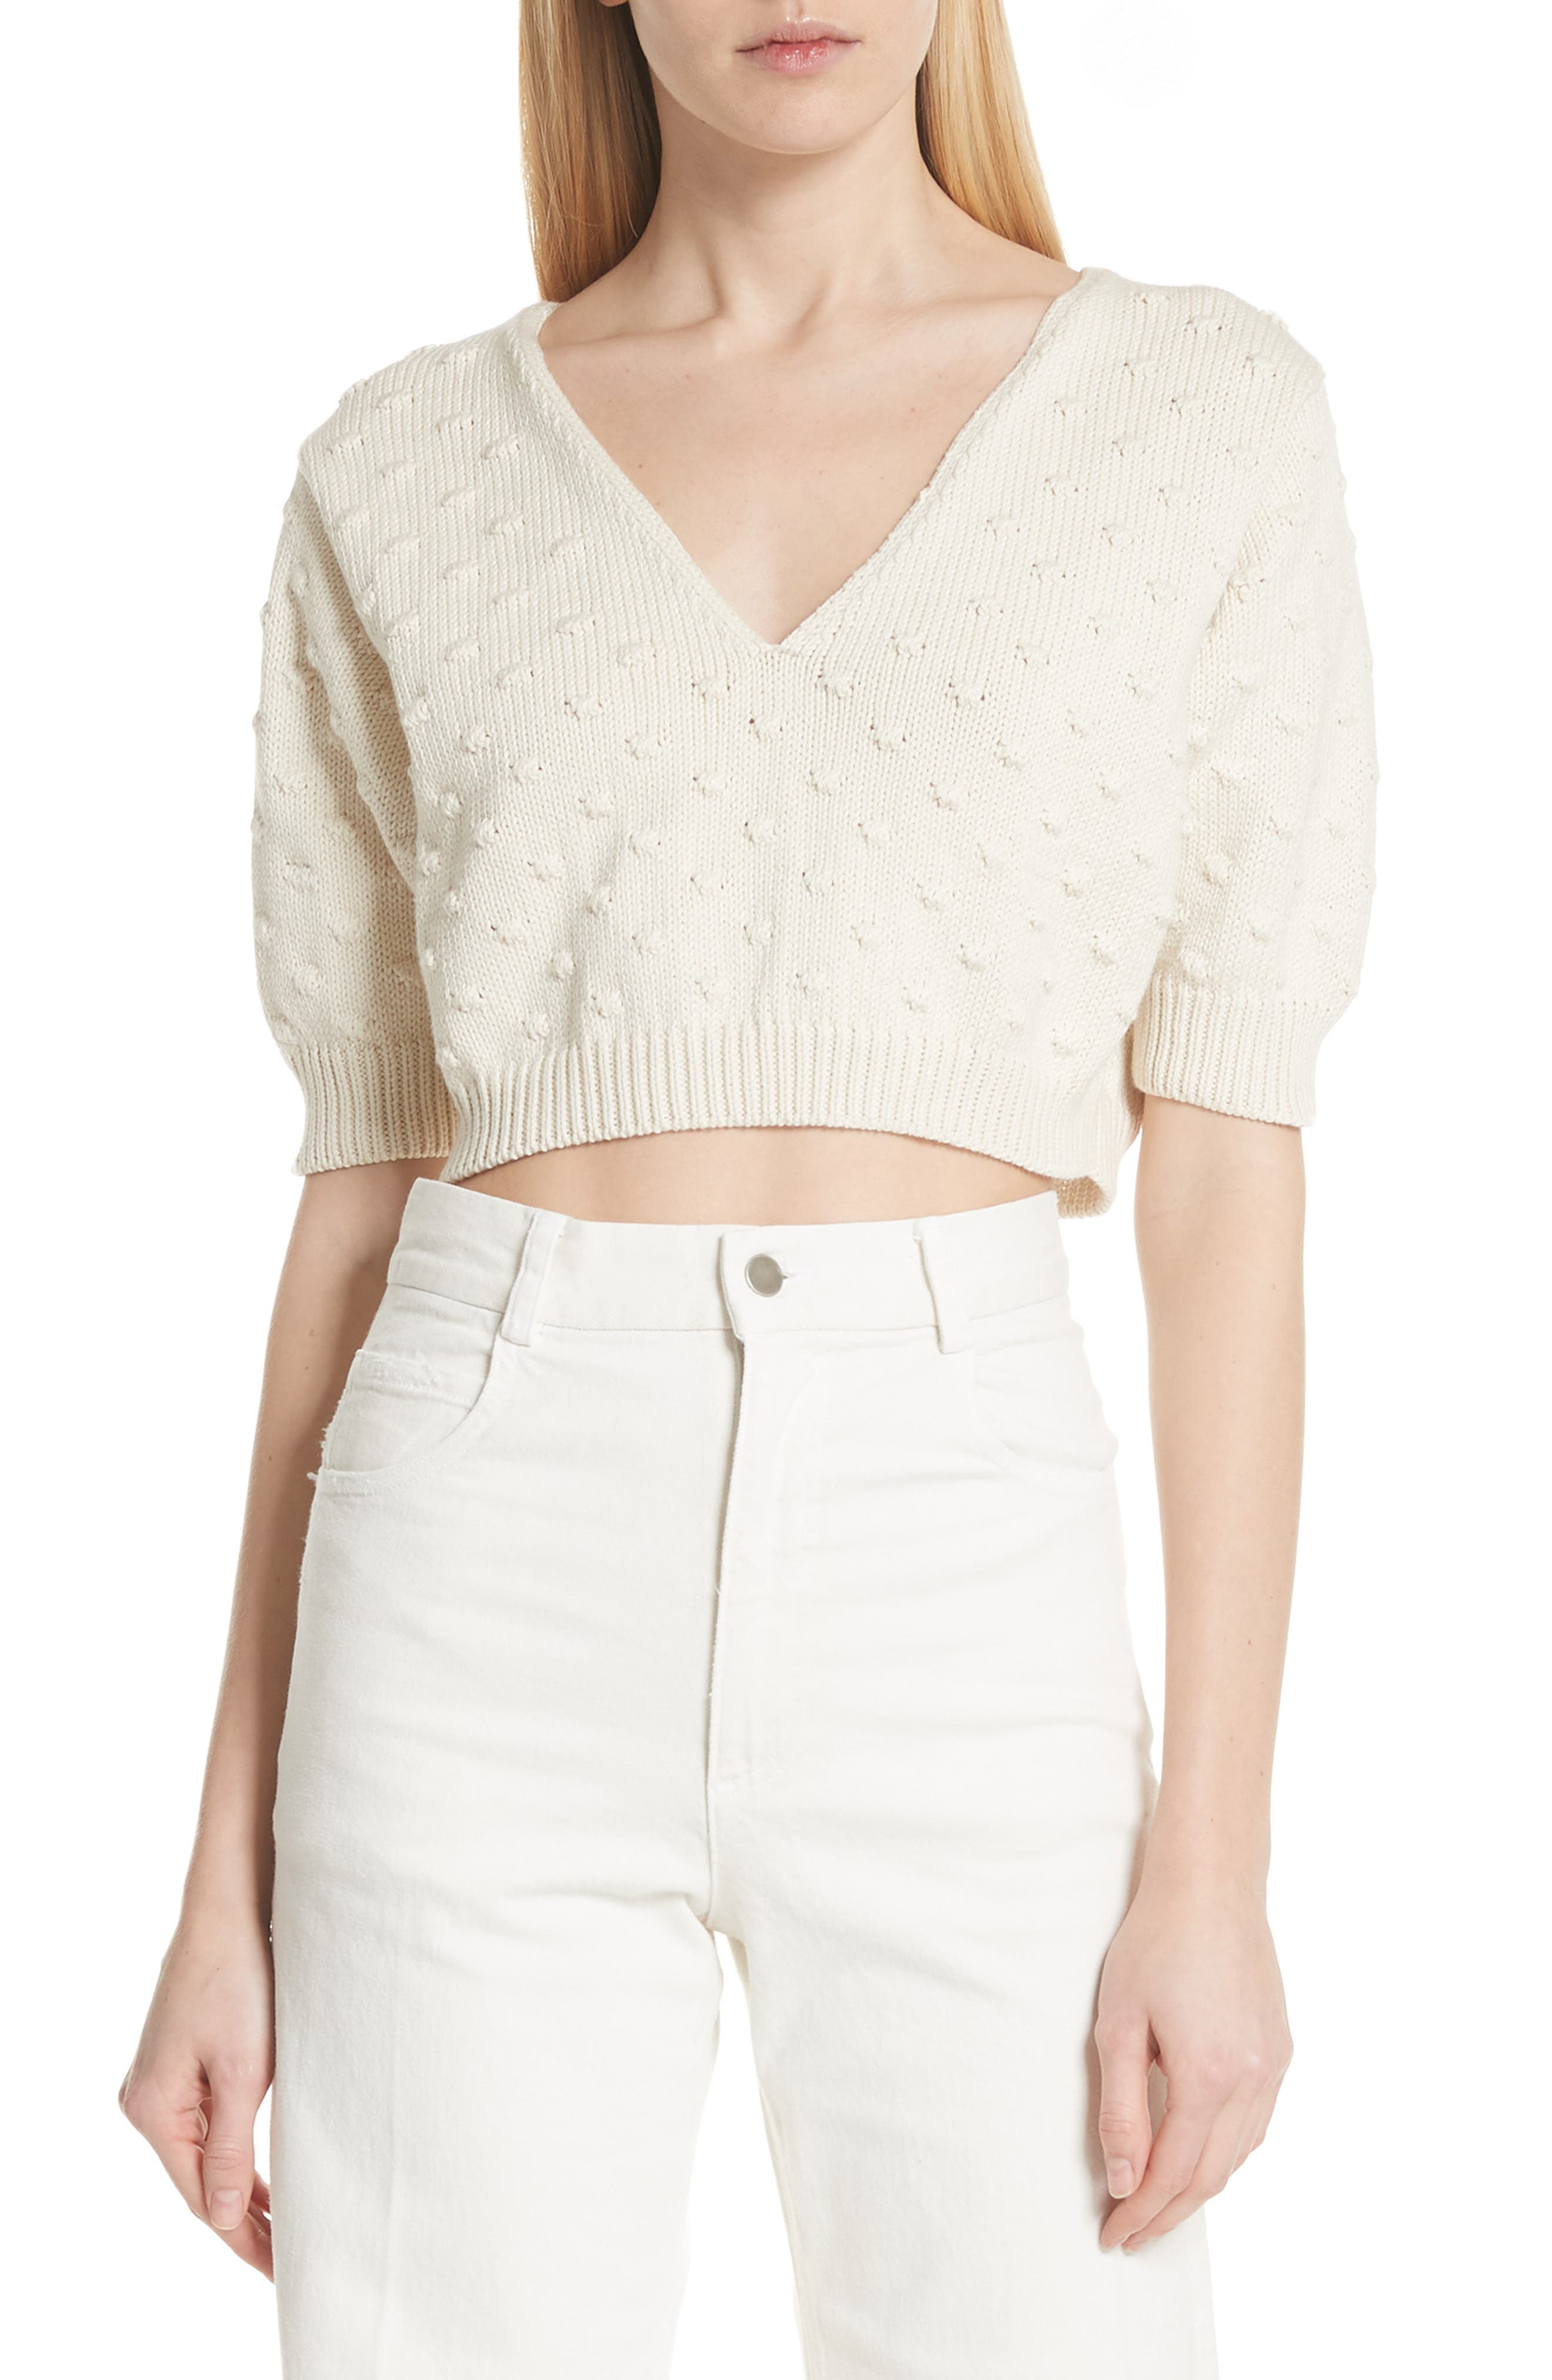 Ode Garbanzo Knit Crop Sweater,                             Main thumbnail 1, color,                             Ivory